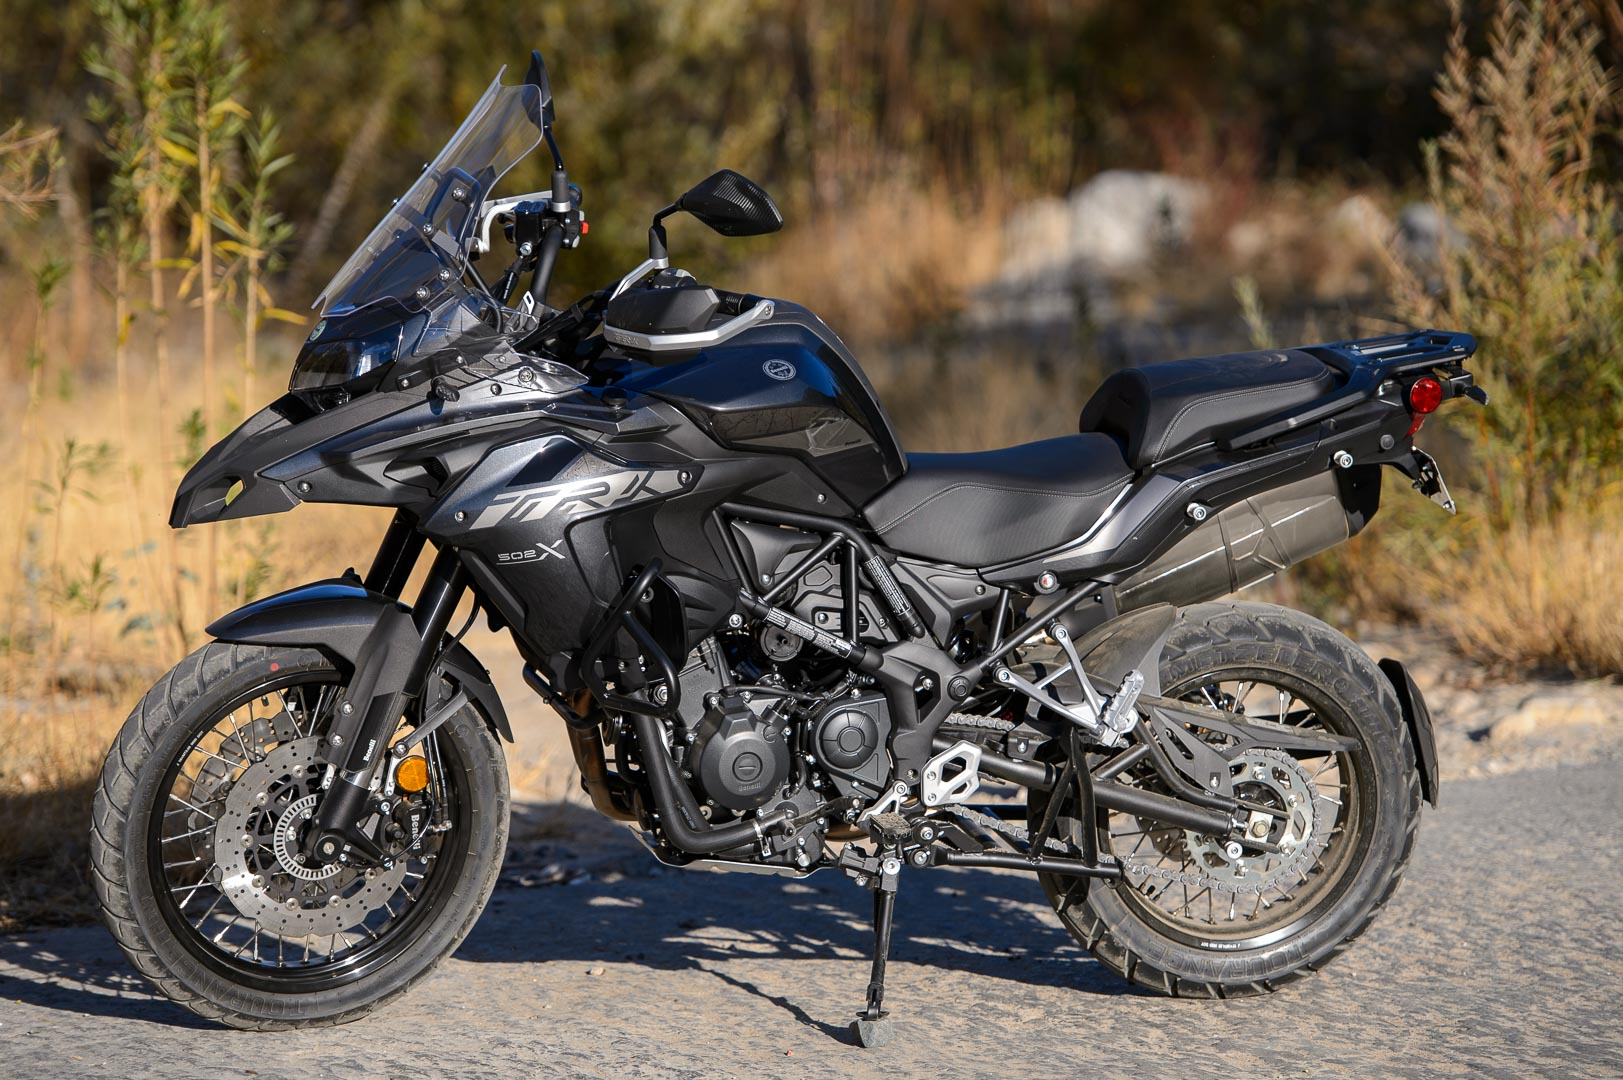 2021 Benelli TRK502X Review: Price